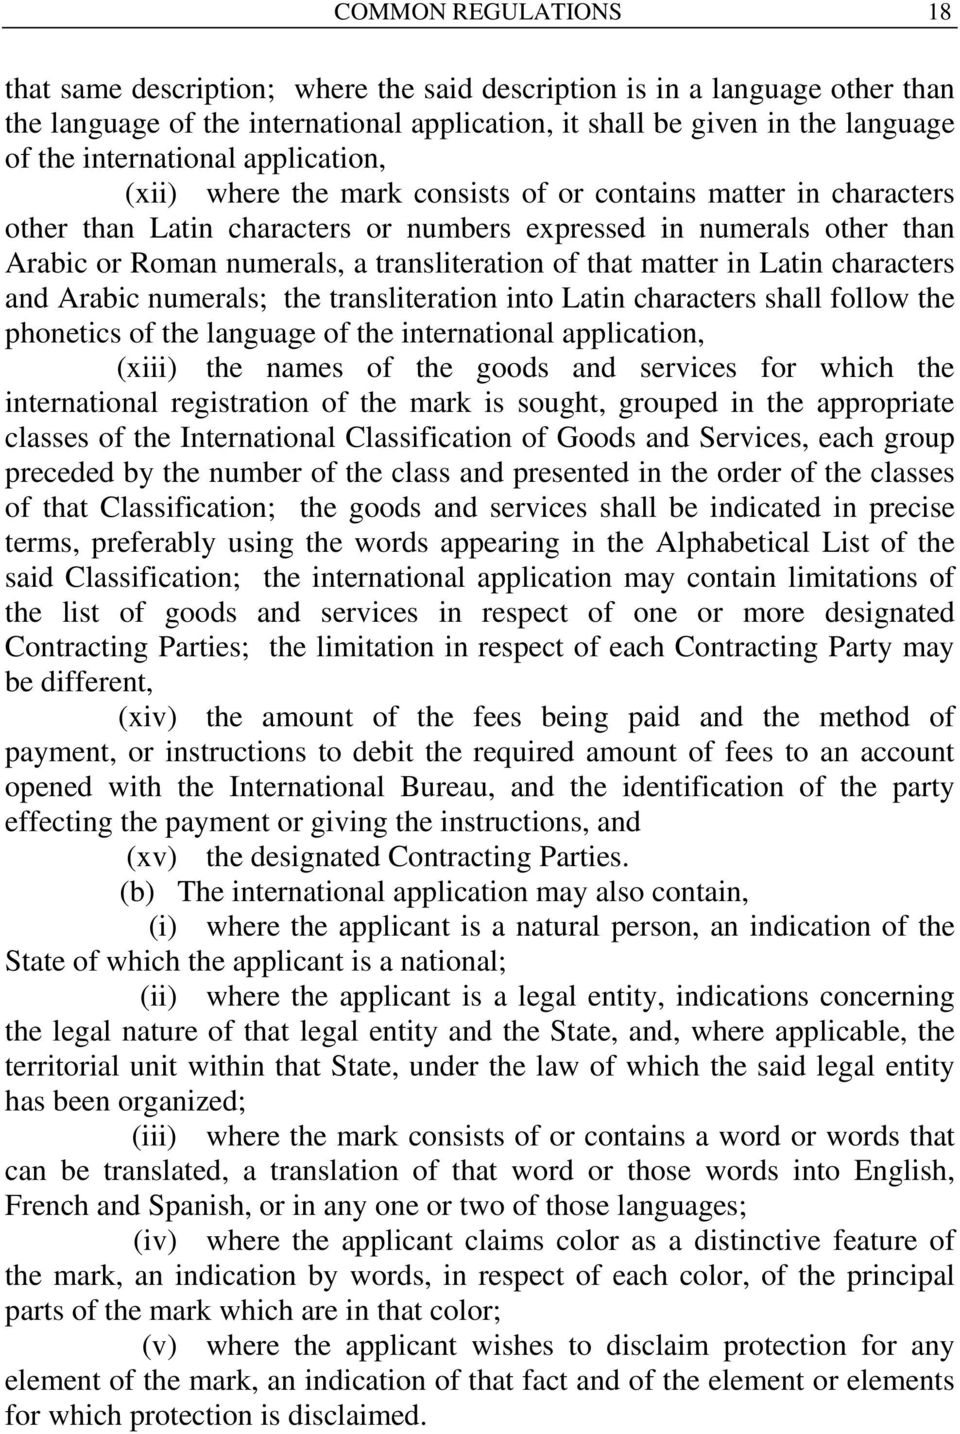 transliteration of that matter in Latin characters and Arabic numerals; the transliteration into Latin characters shall follow the phonetics of the language of the international application, (xiii)